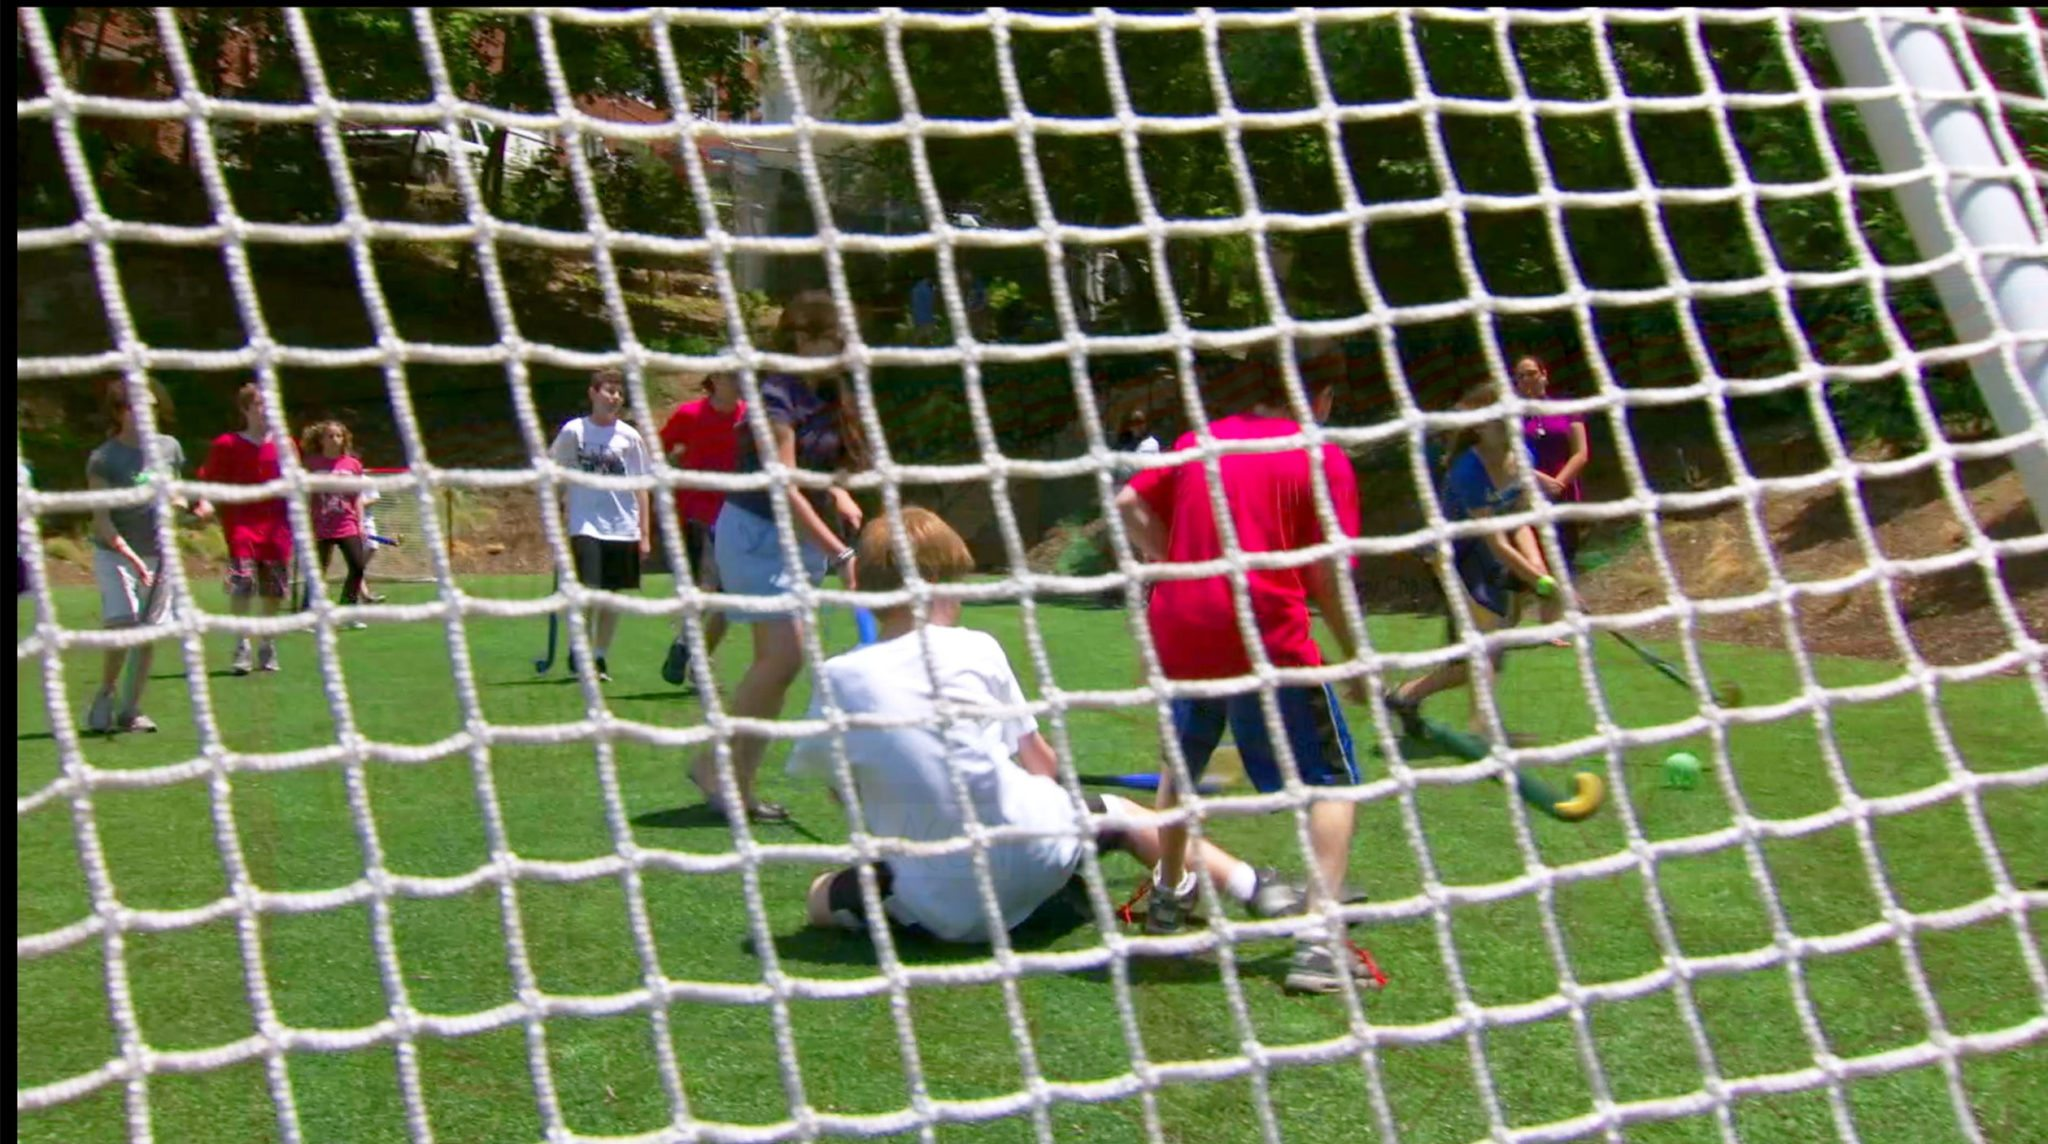 Students play field hockey together on the chatzer (field).